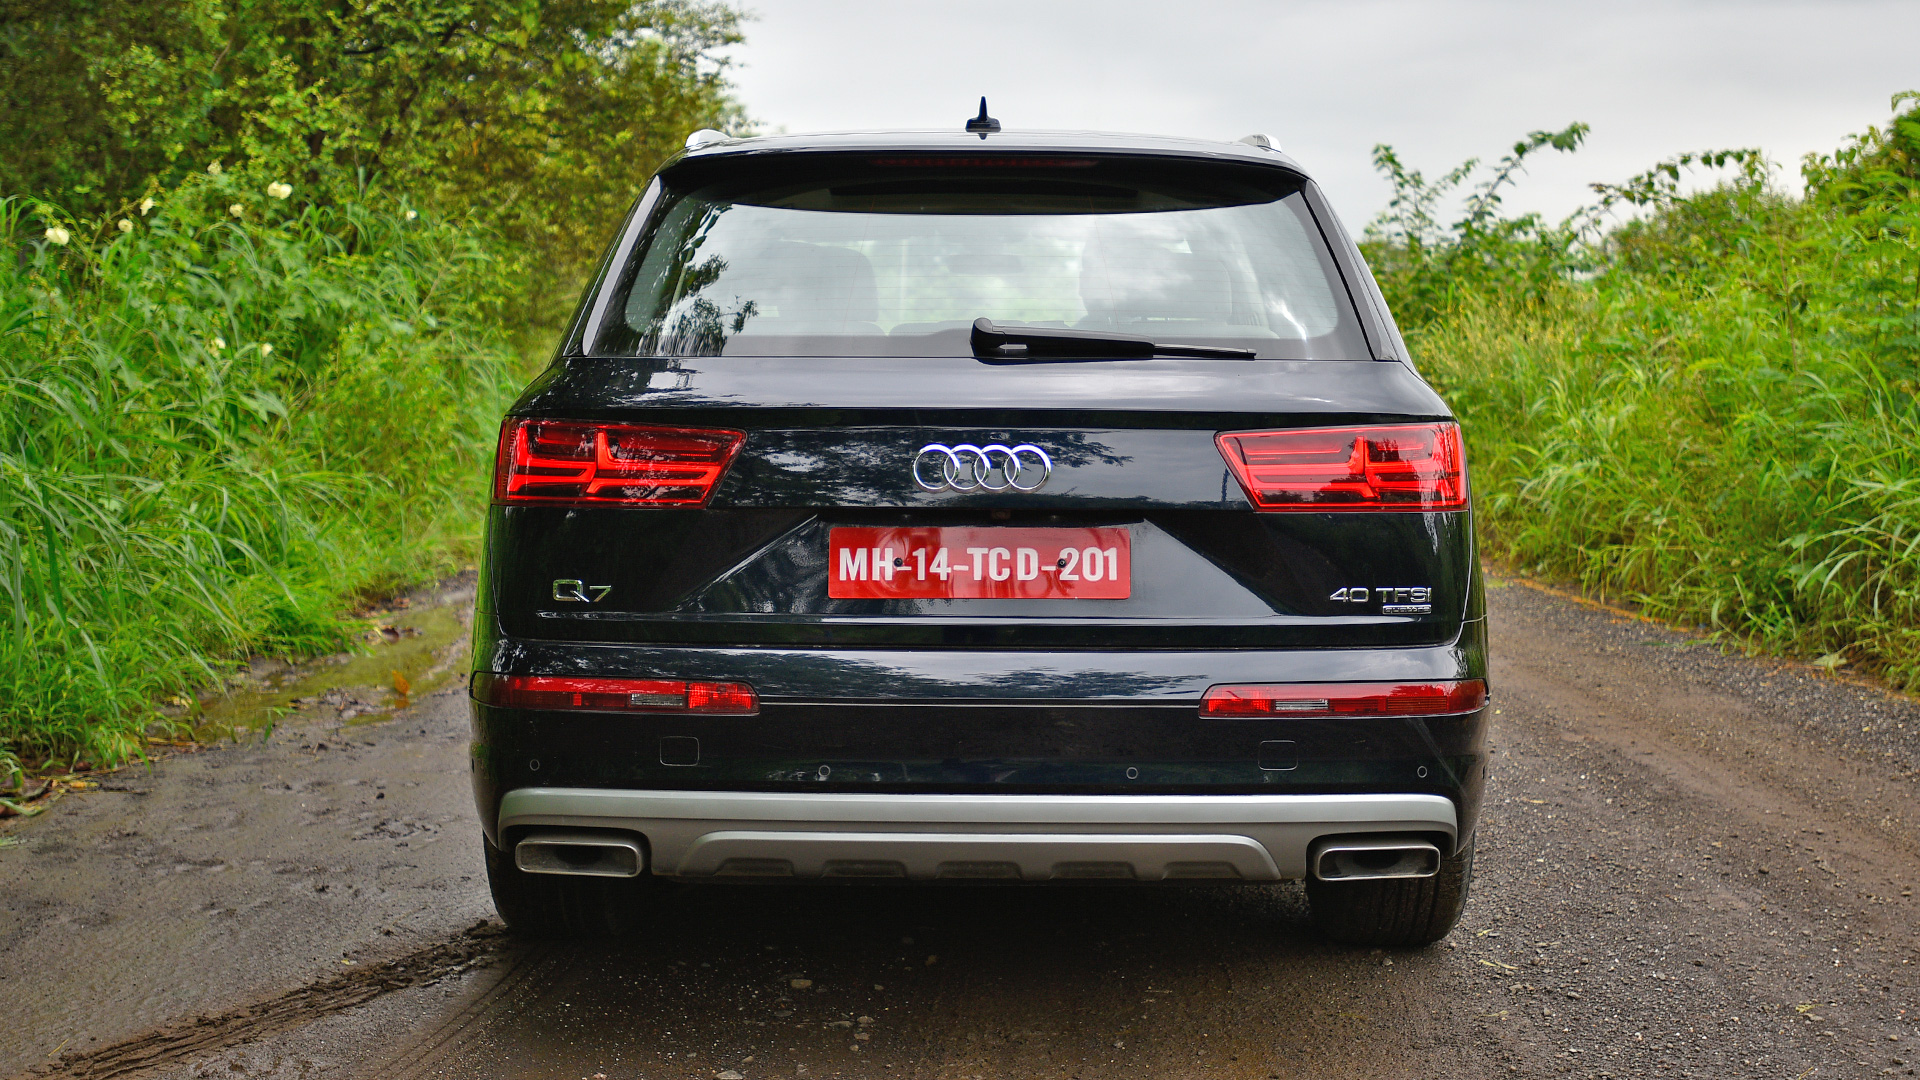 Audi Q7 2017 - Price, Mileage, Reviews, Specification, Gallery - Overdrive